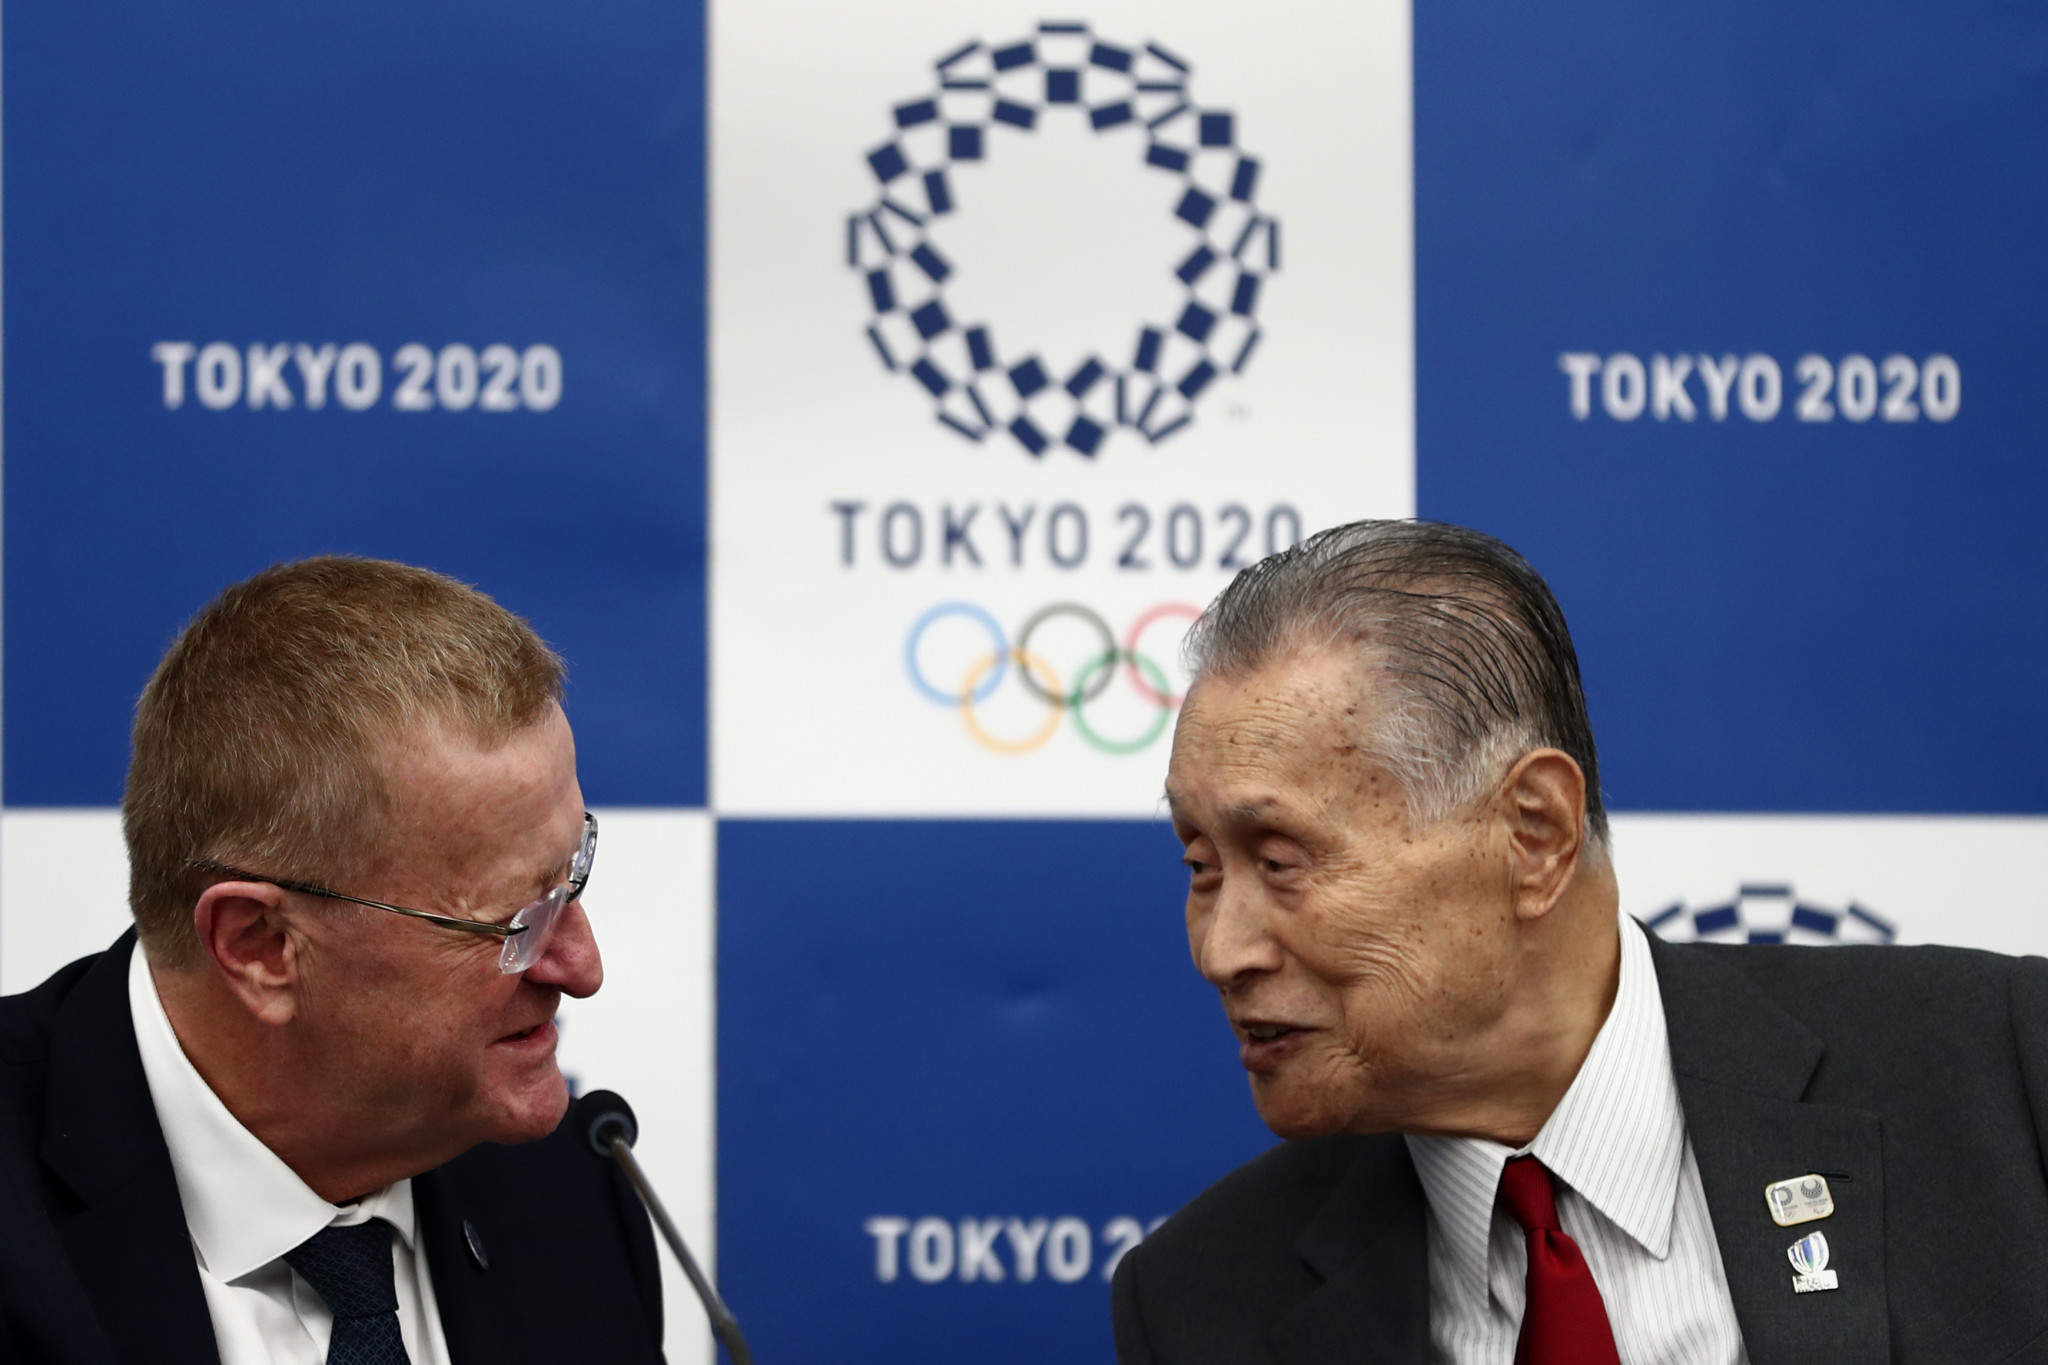 Coates urges Tokyo 2020 to ensure post-Games legacy by hosting major events